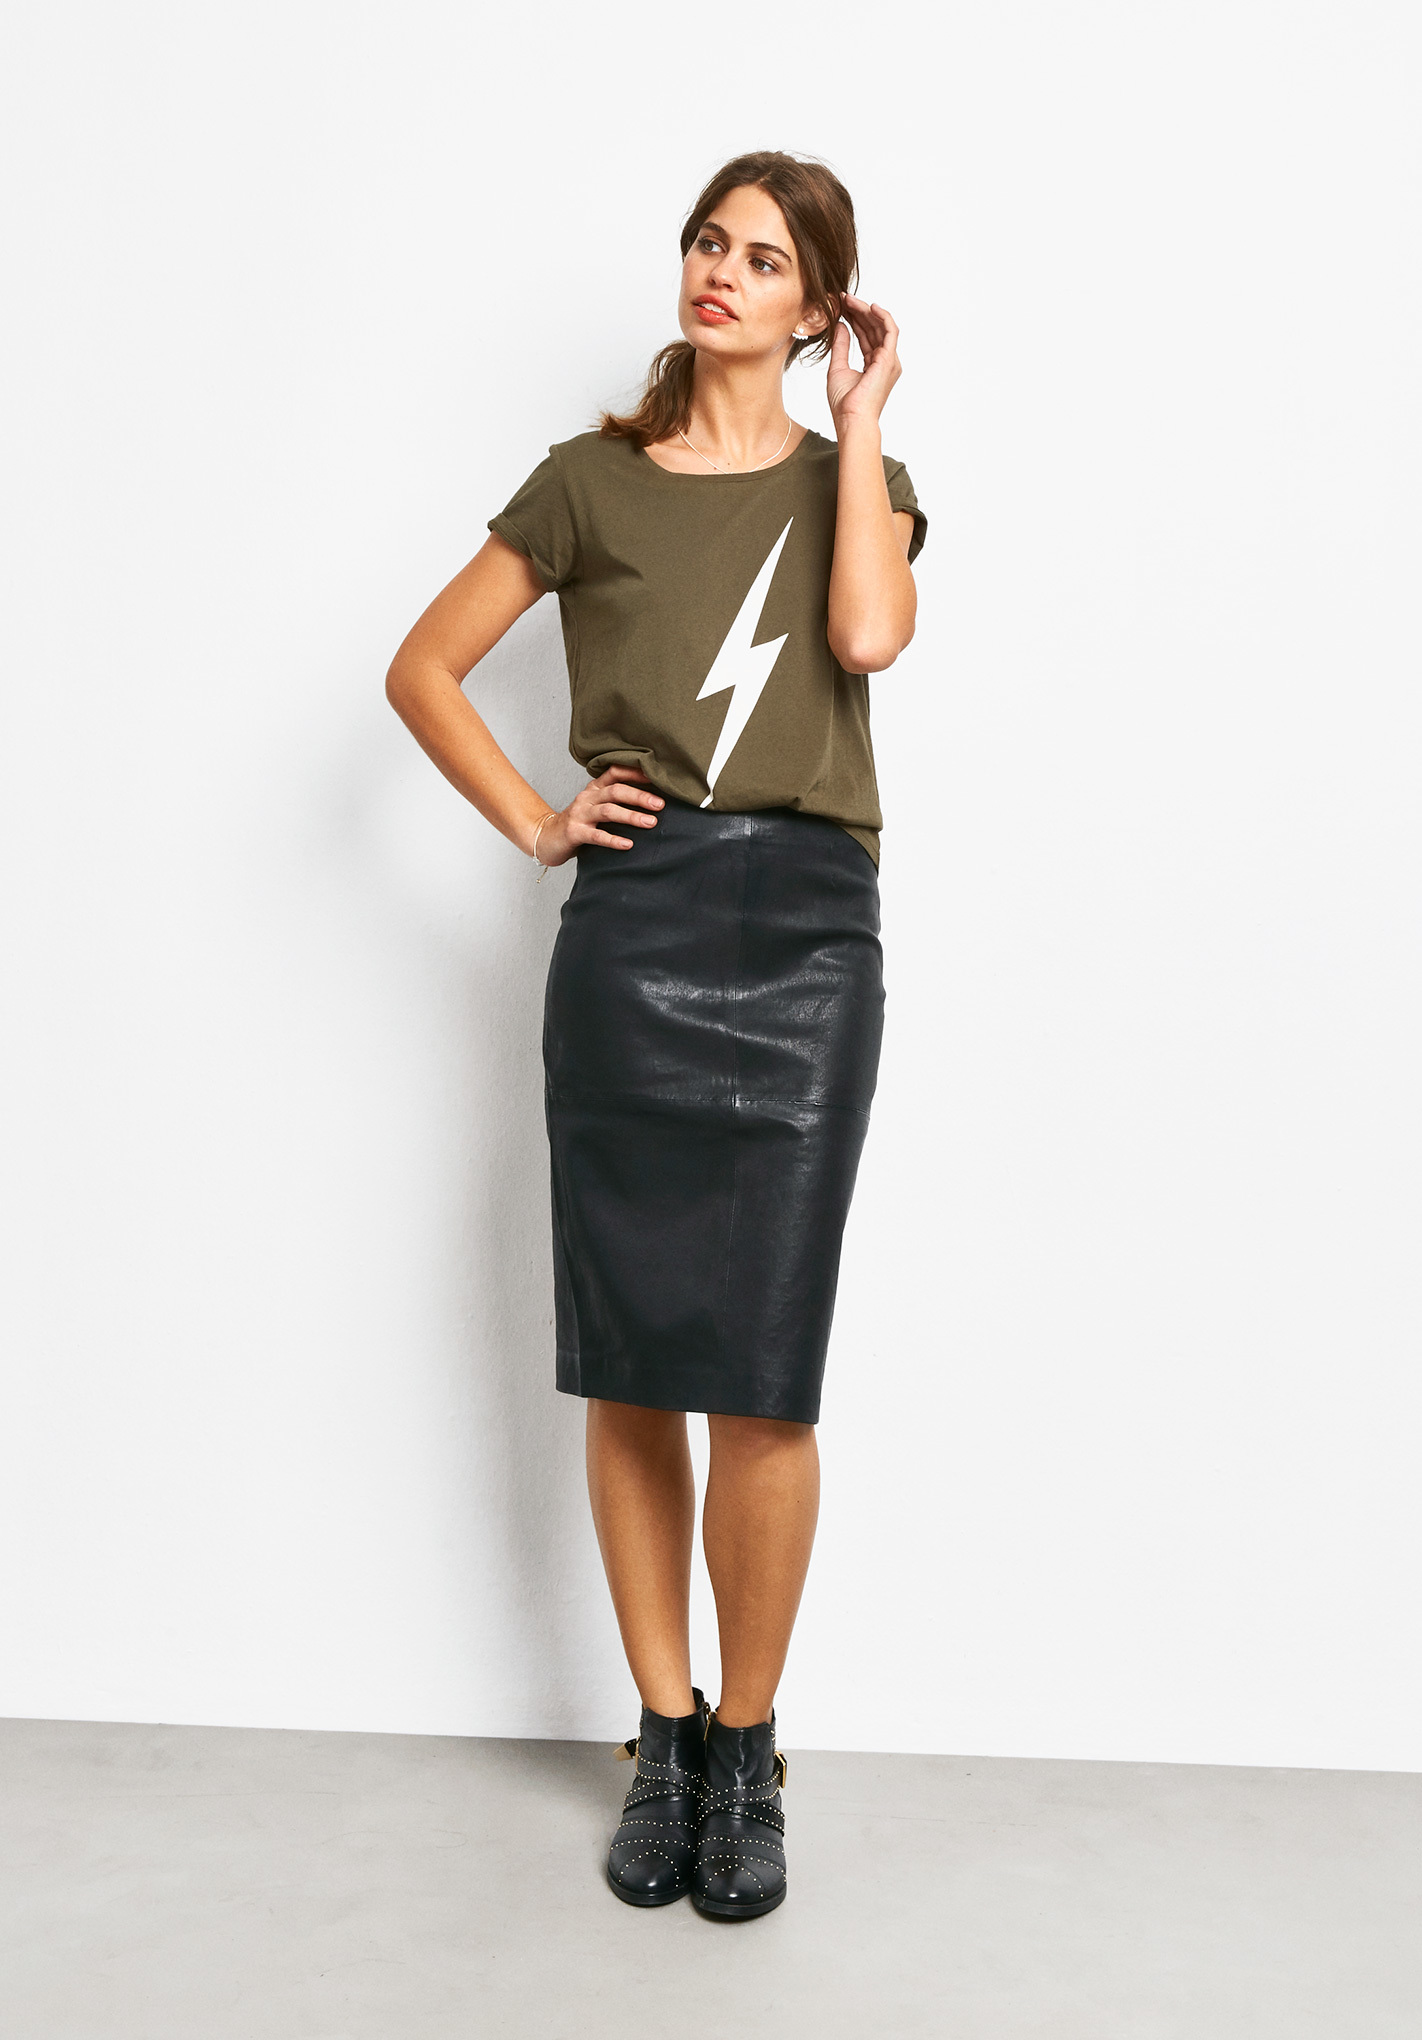 leather pencil skirt versatile lasting and fashionable